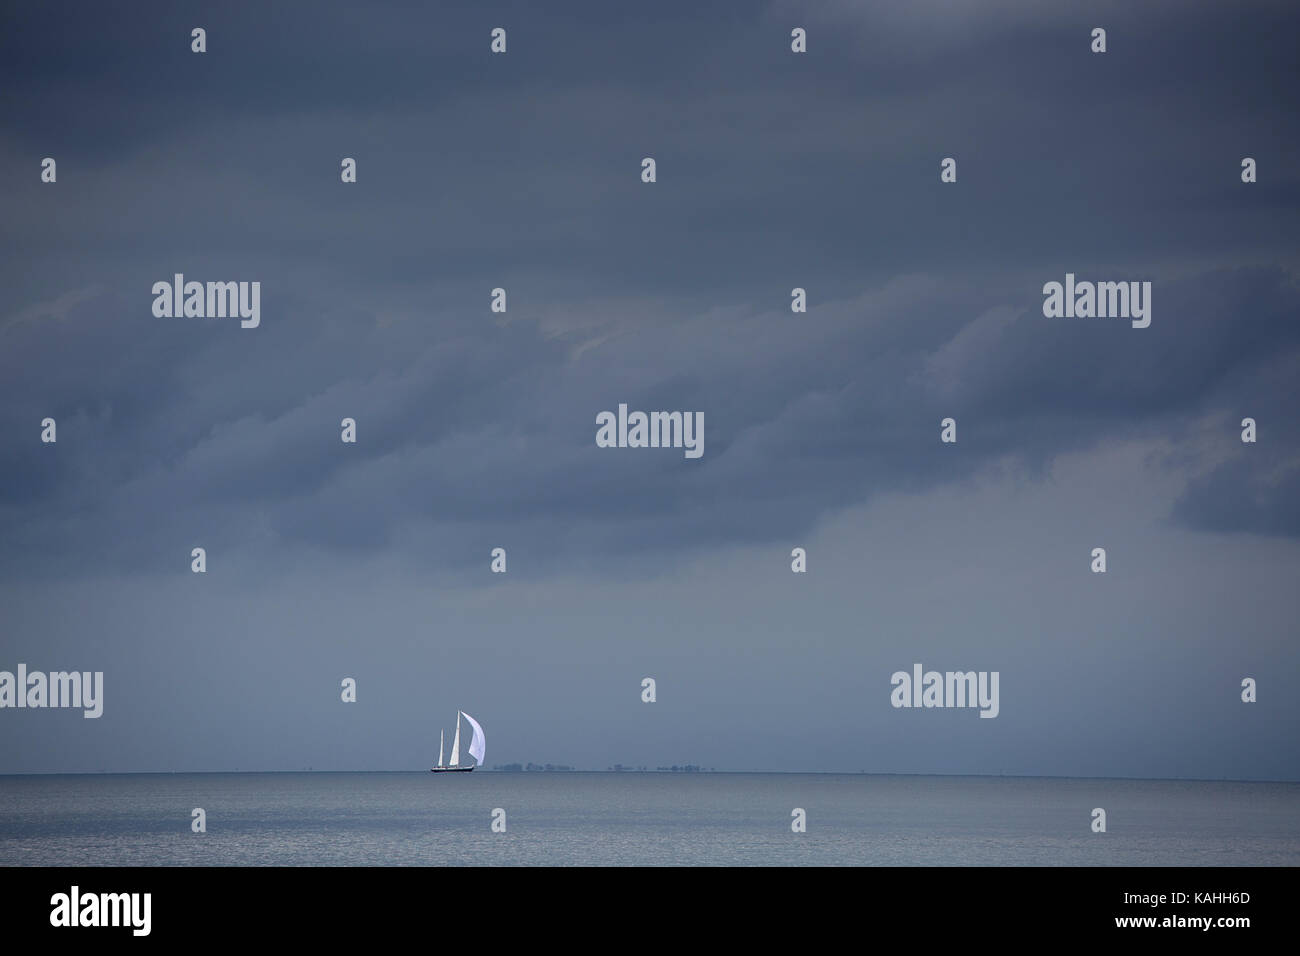 A stormy sky with white sailing boat on the horizont near Strunjan, Slovenia. - Stock Image